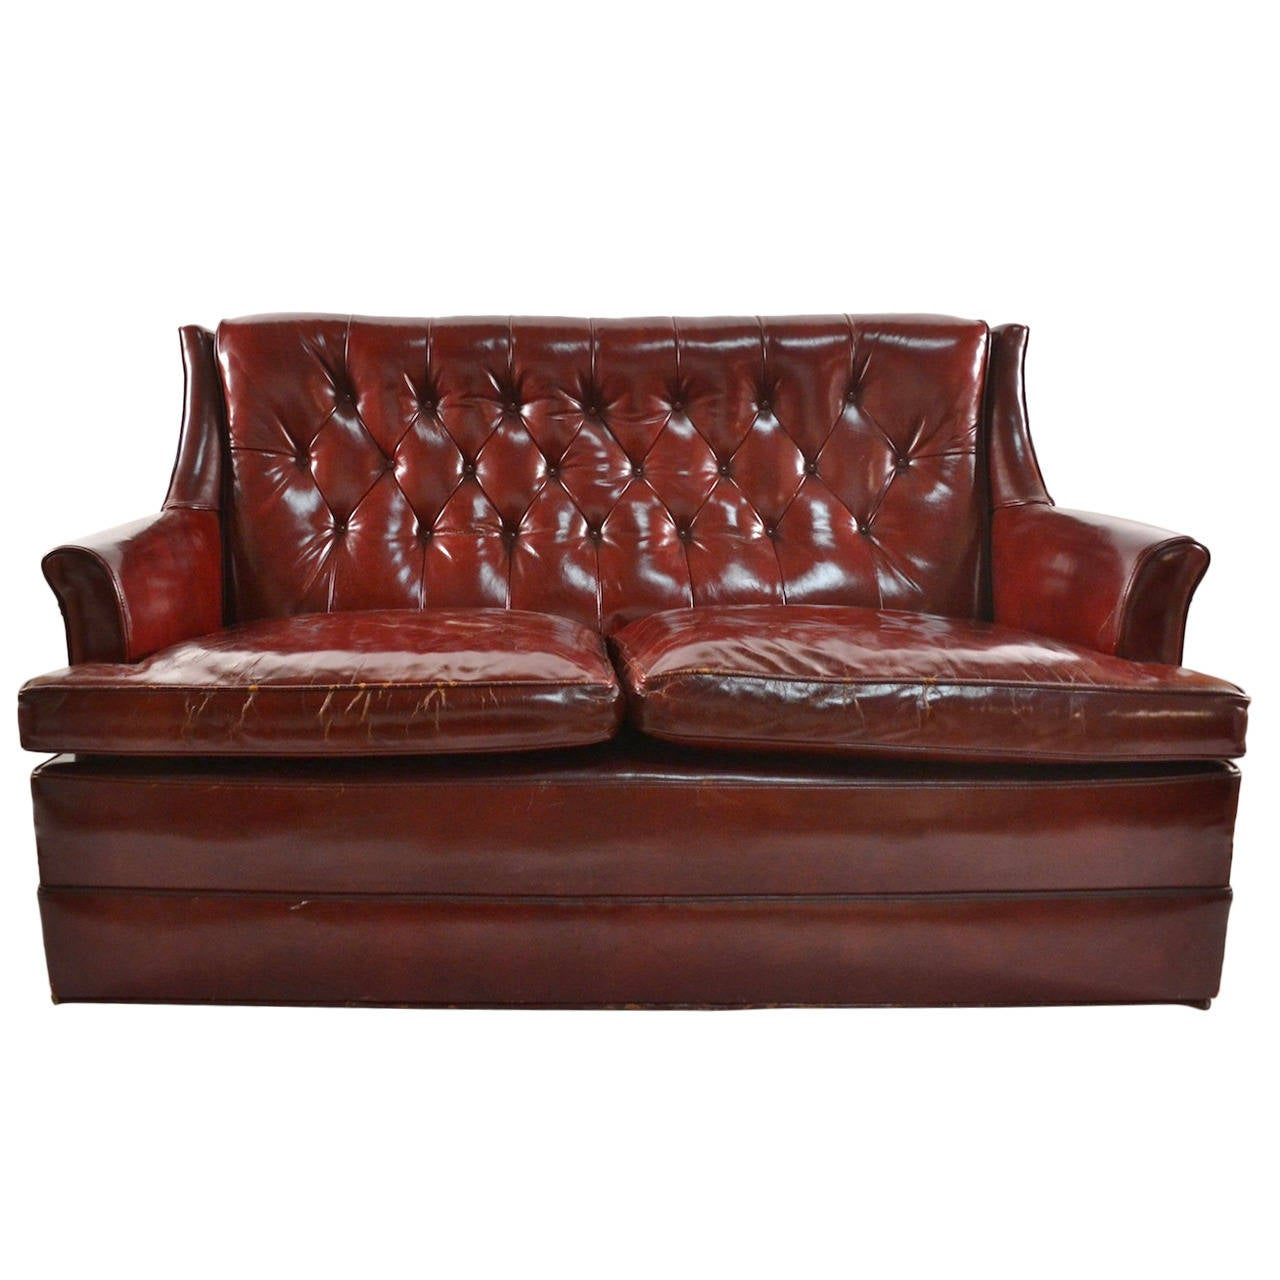 Vintage Leather Love Seat Sofa With Button Tufted Back At